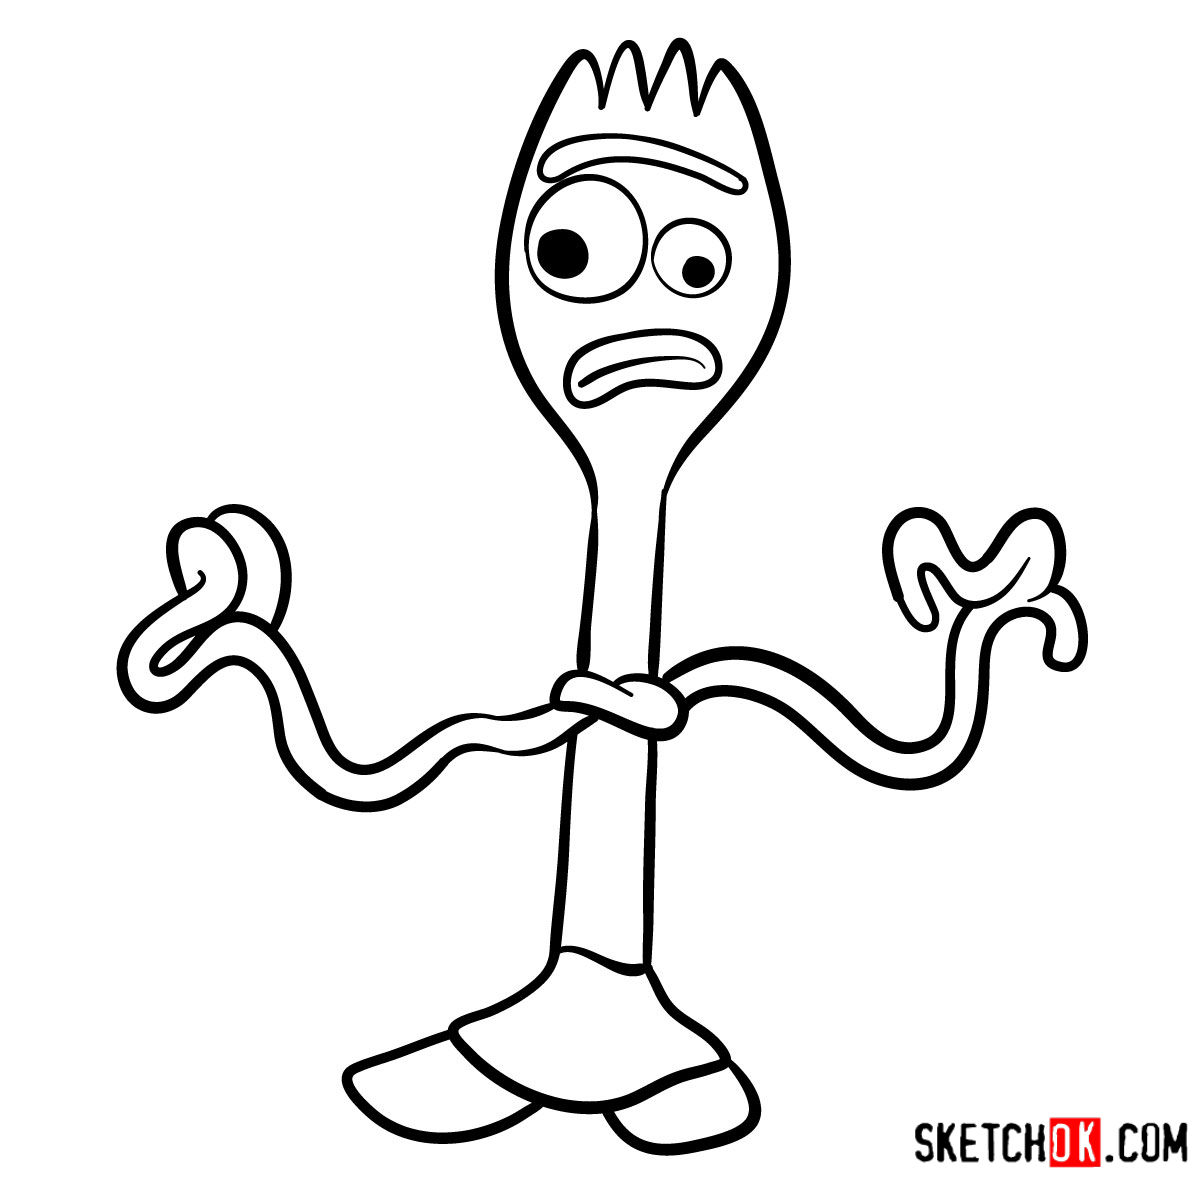 toy story 4 coloring pages forky new toy story 4 forky coloring pages get coloring pages pages 4 story forky coloring toy